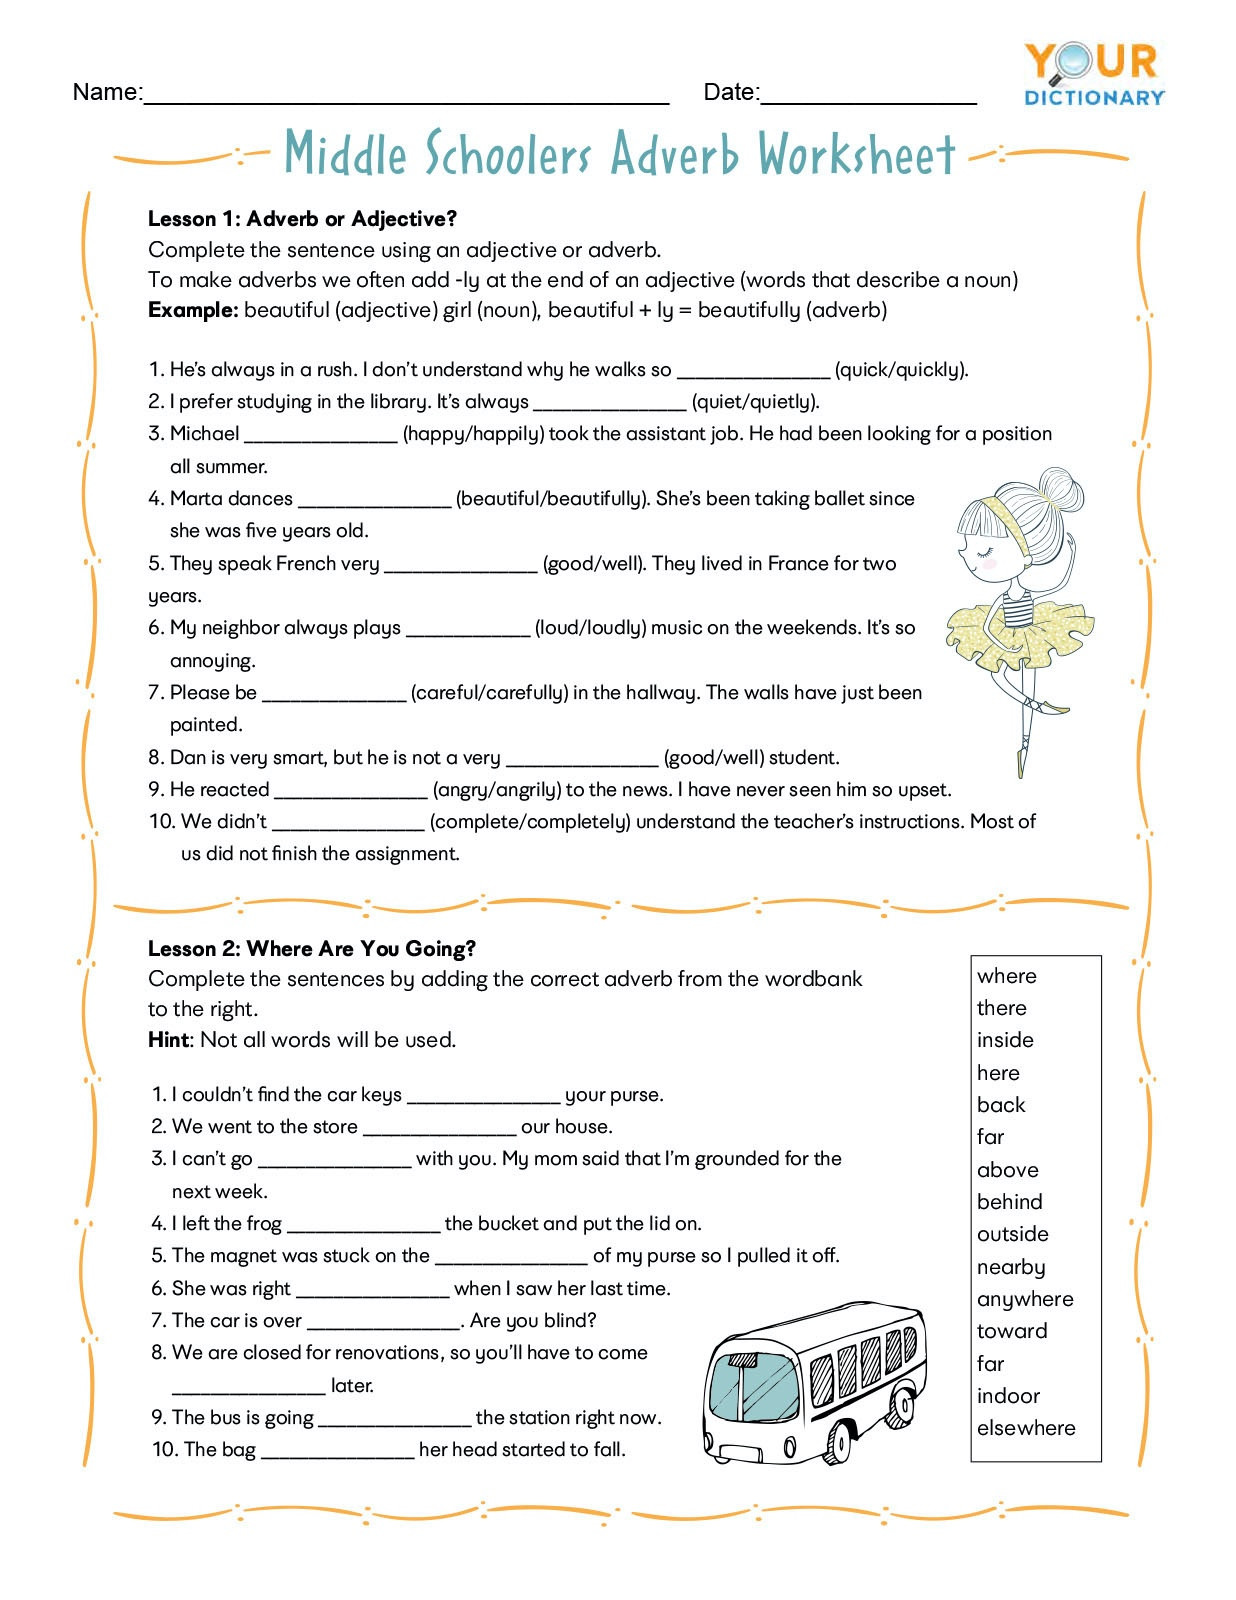 Grammar Worksheets Middle School Pdf Adverb Worksheets for Elementary and Middle School